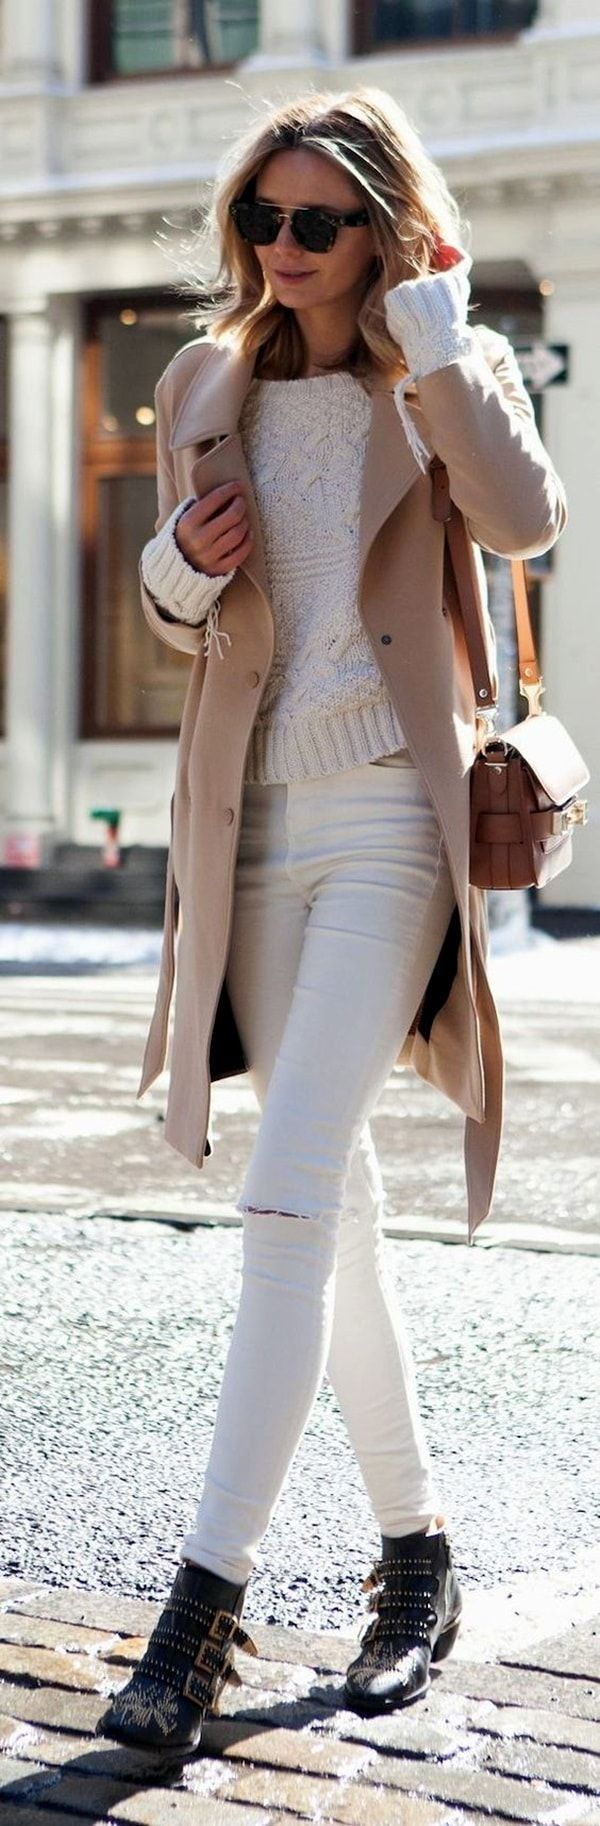 24 Dressy Winter Outfits You'll Want to Try